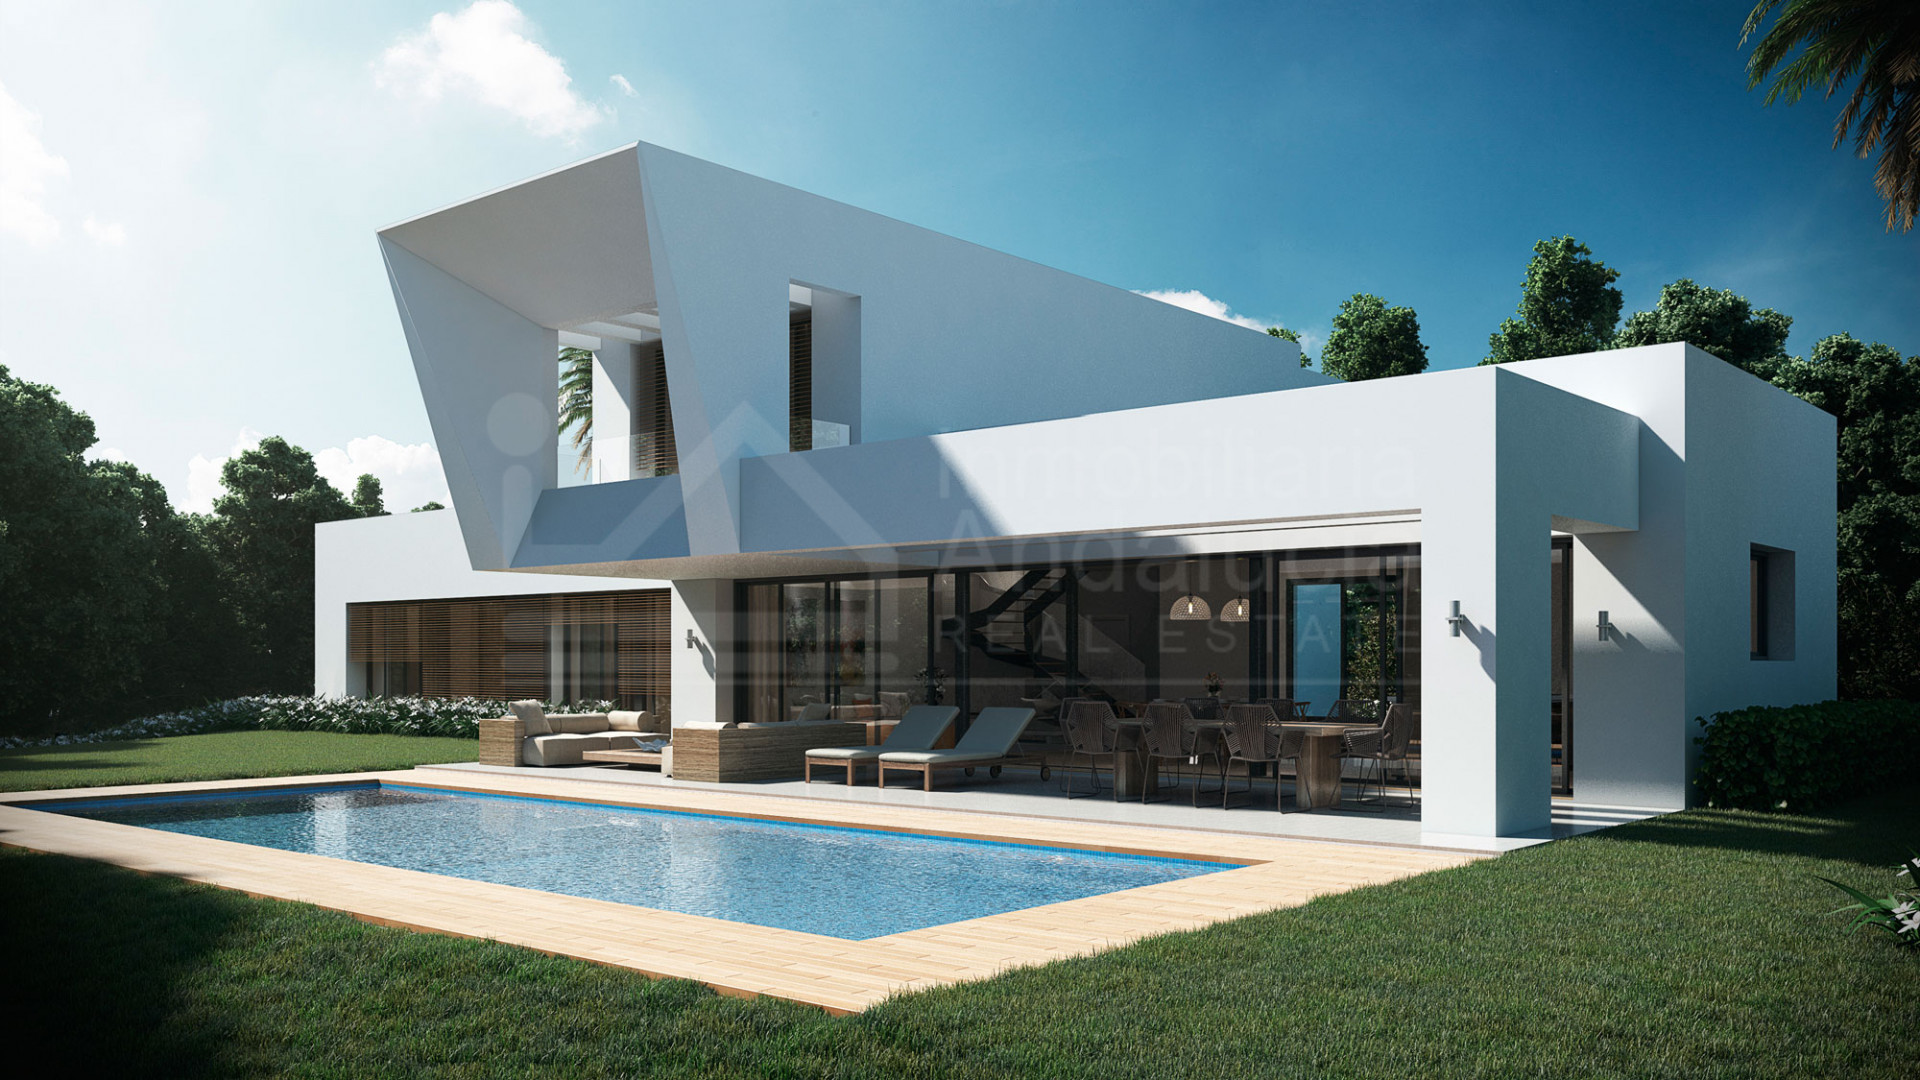 Brand new stylish contemporary 4-bedroom villa near the golf courses of El Paraíso, Estepona